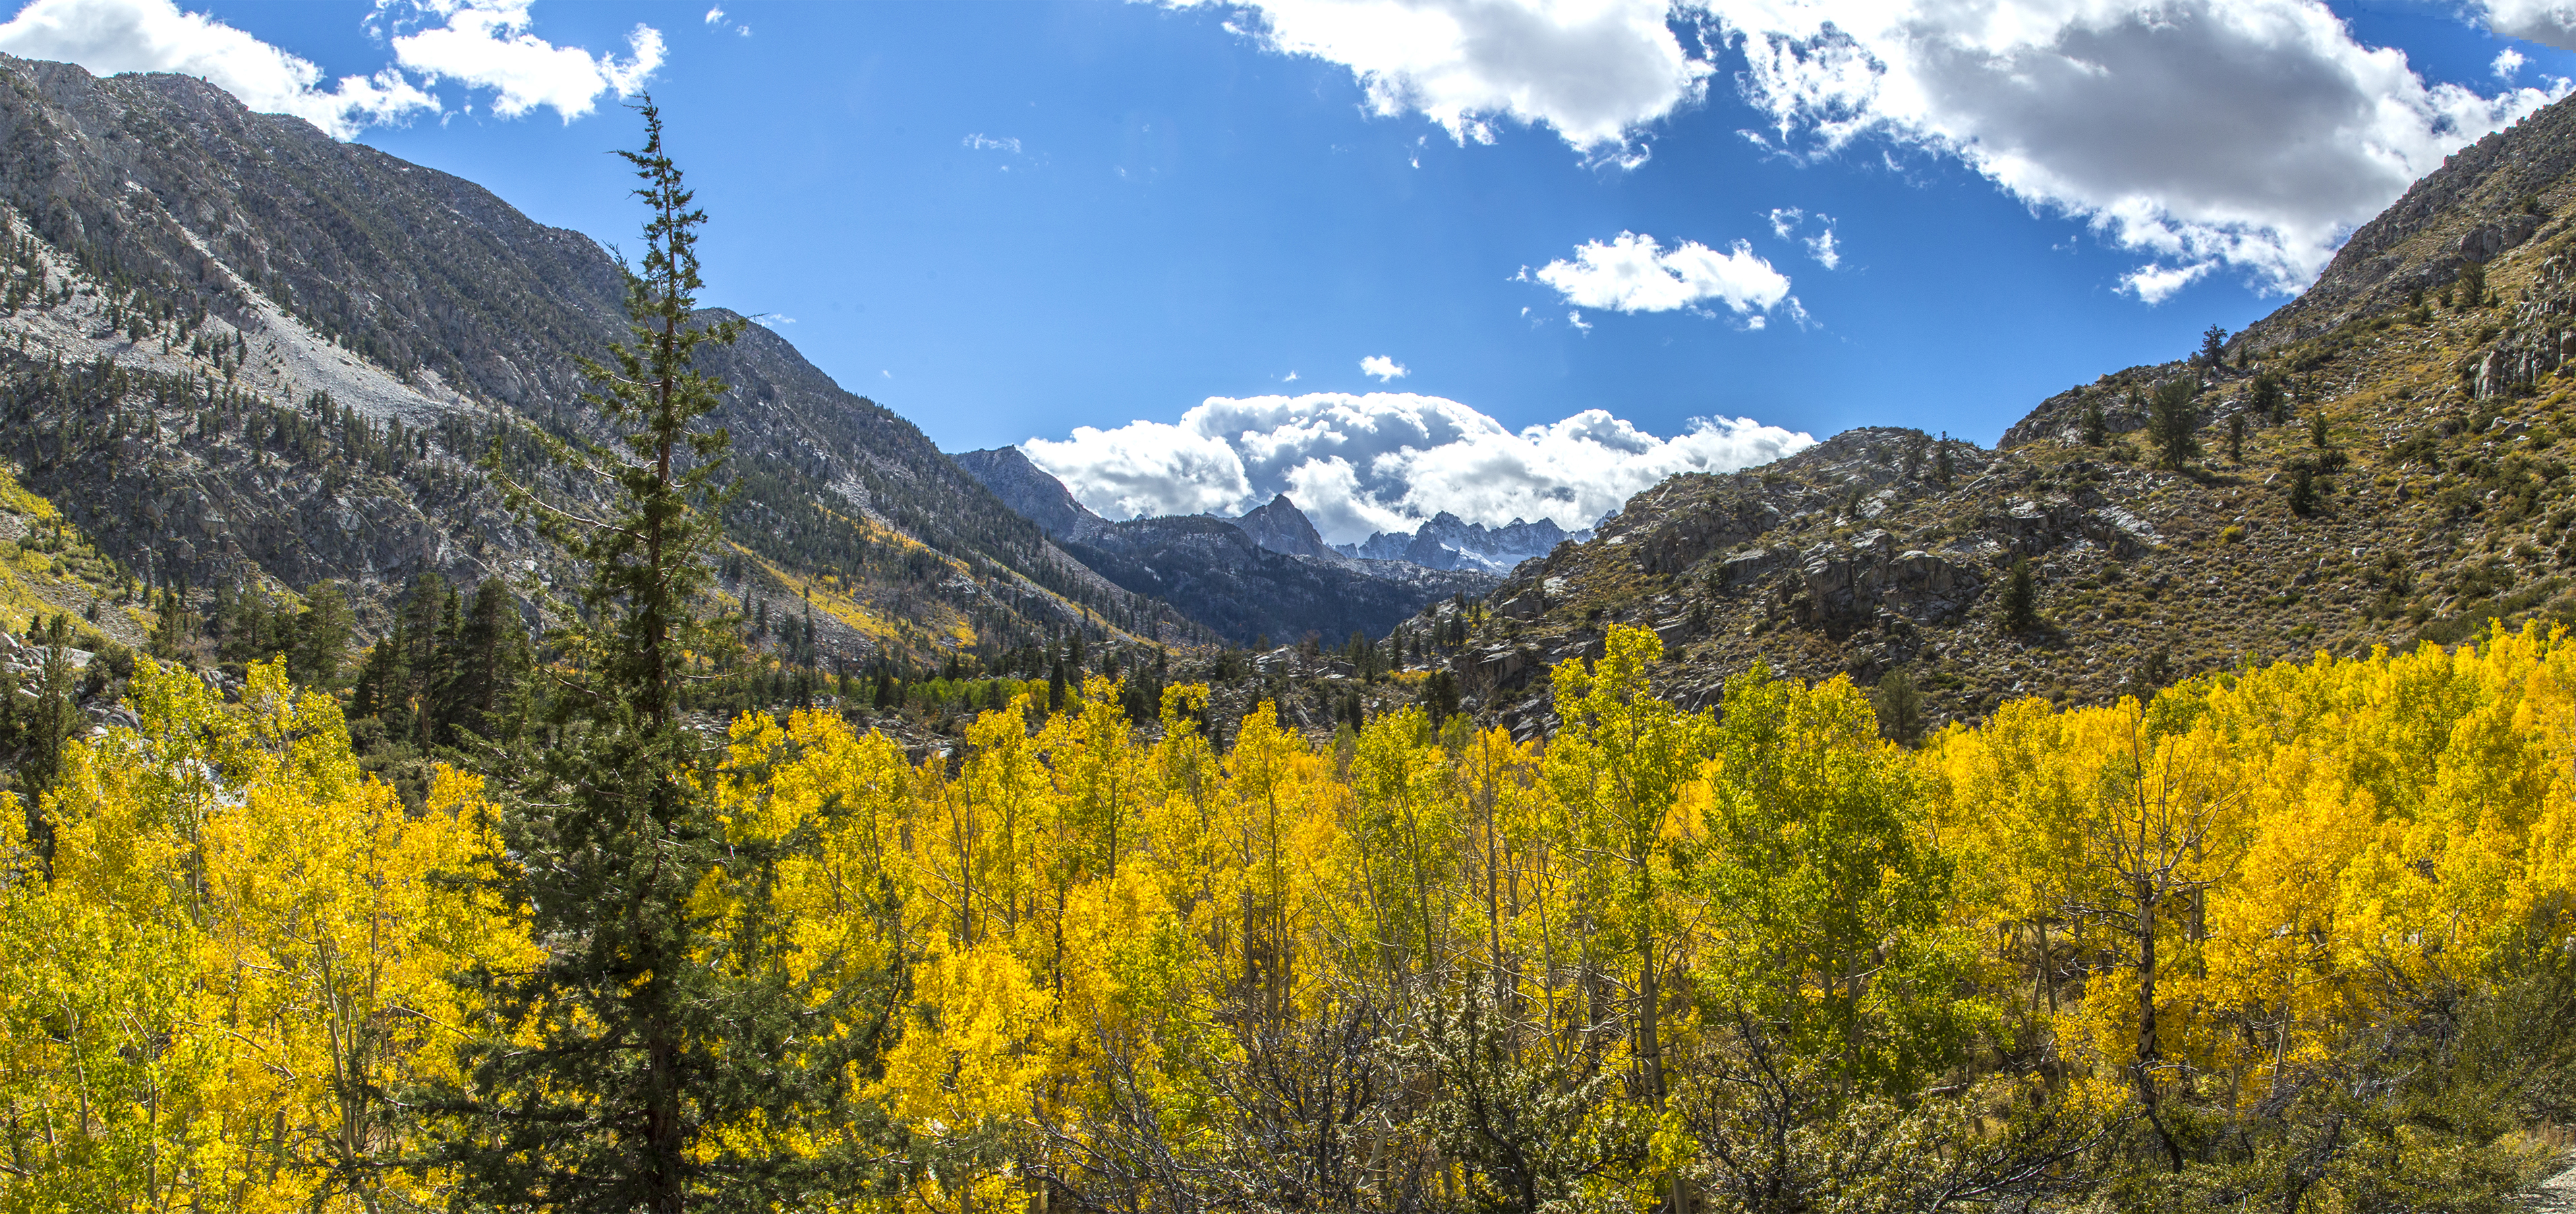 Golden aspens and clouds